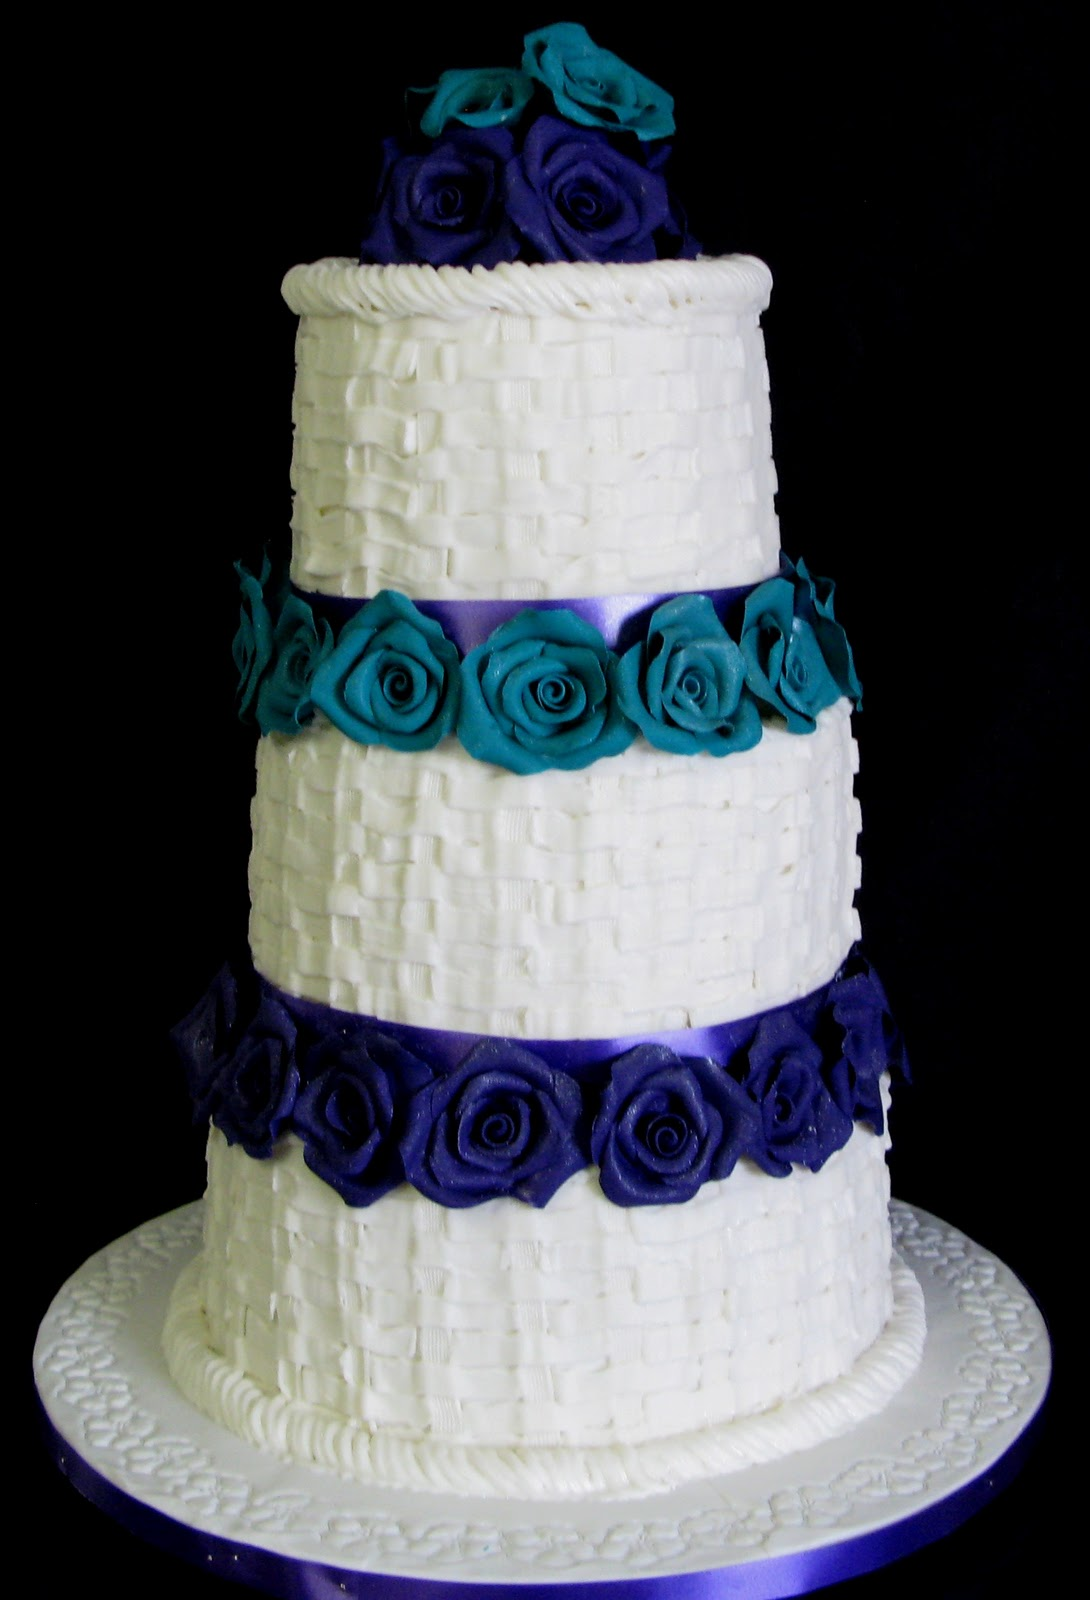 wedding cakes was made for a bride whose wedding theme was turquoise